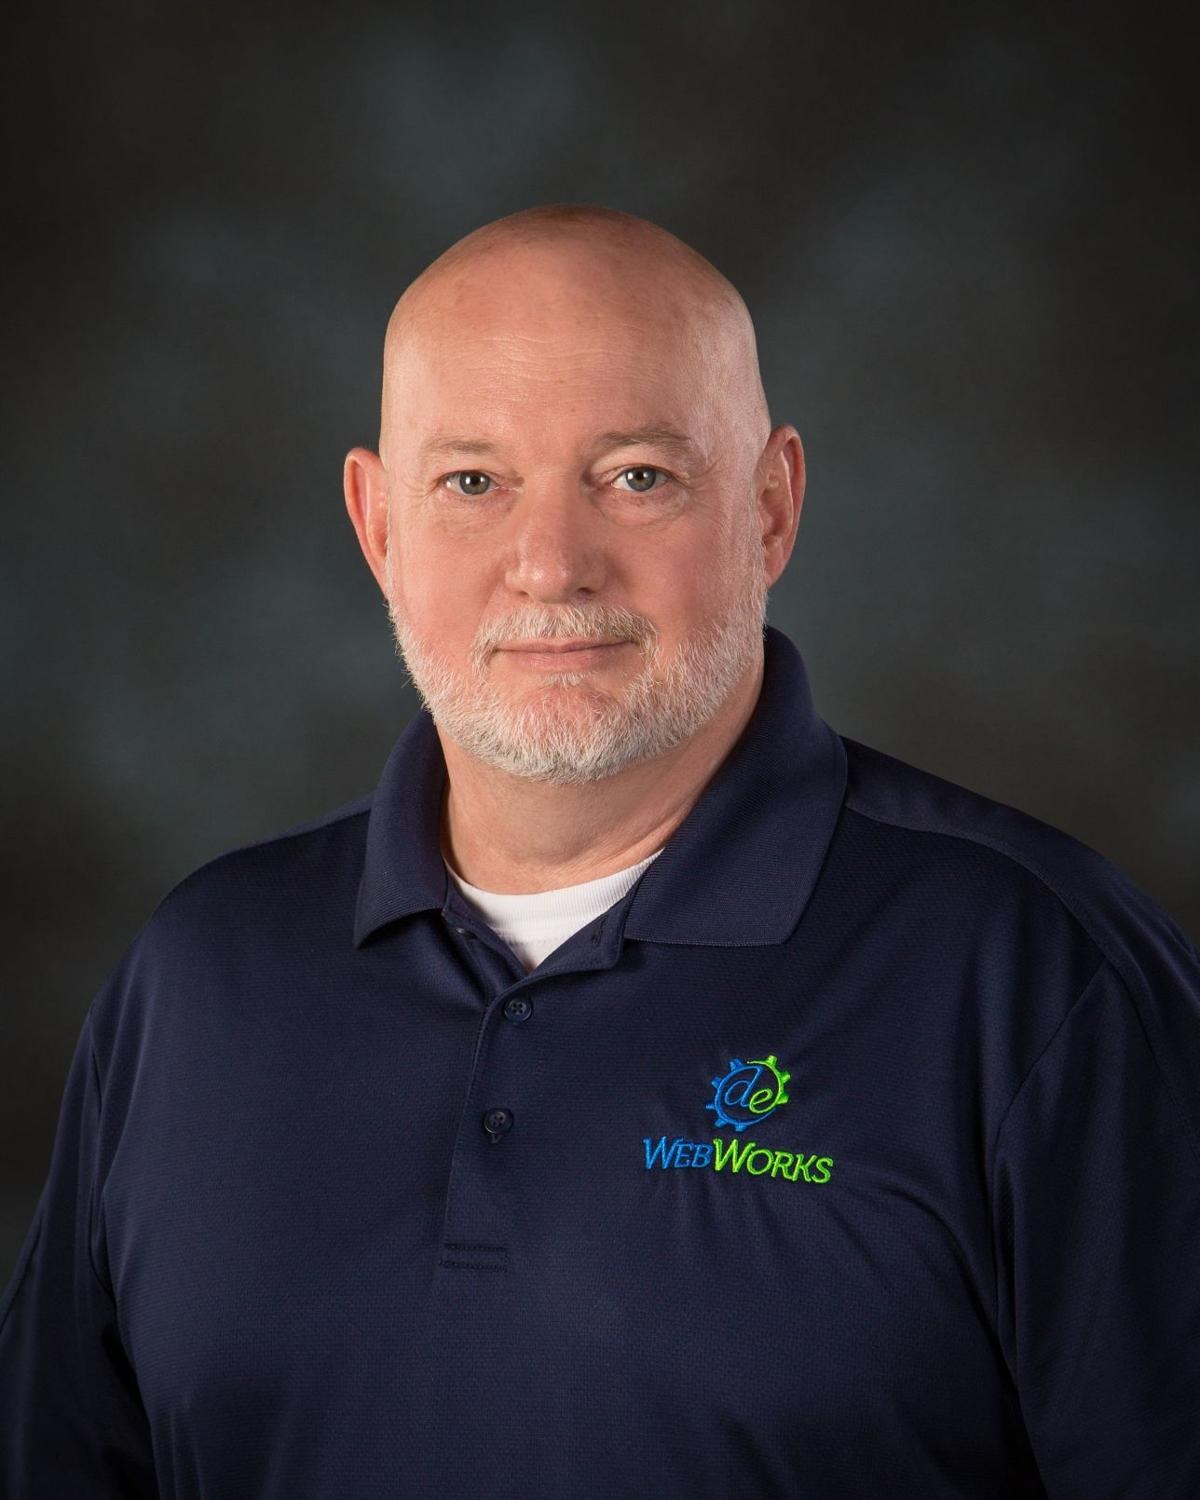 Larry Brusso is an internet security expert for D.E. Web Works